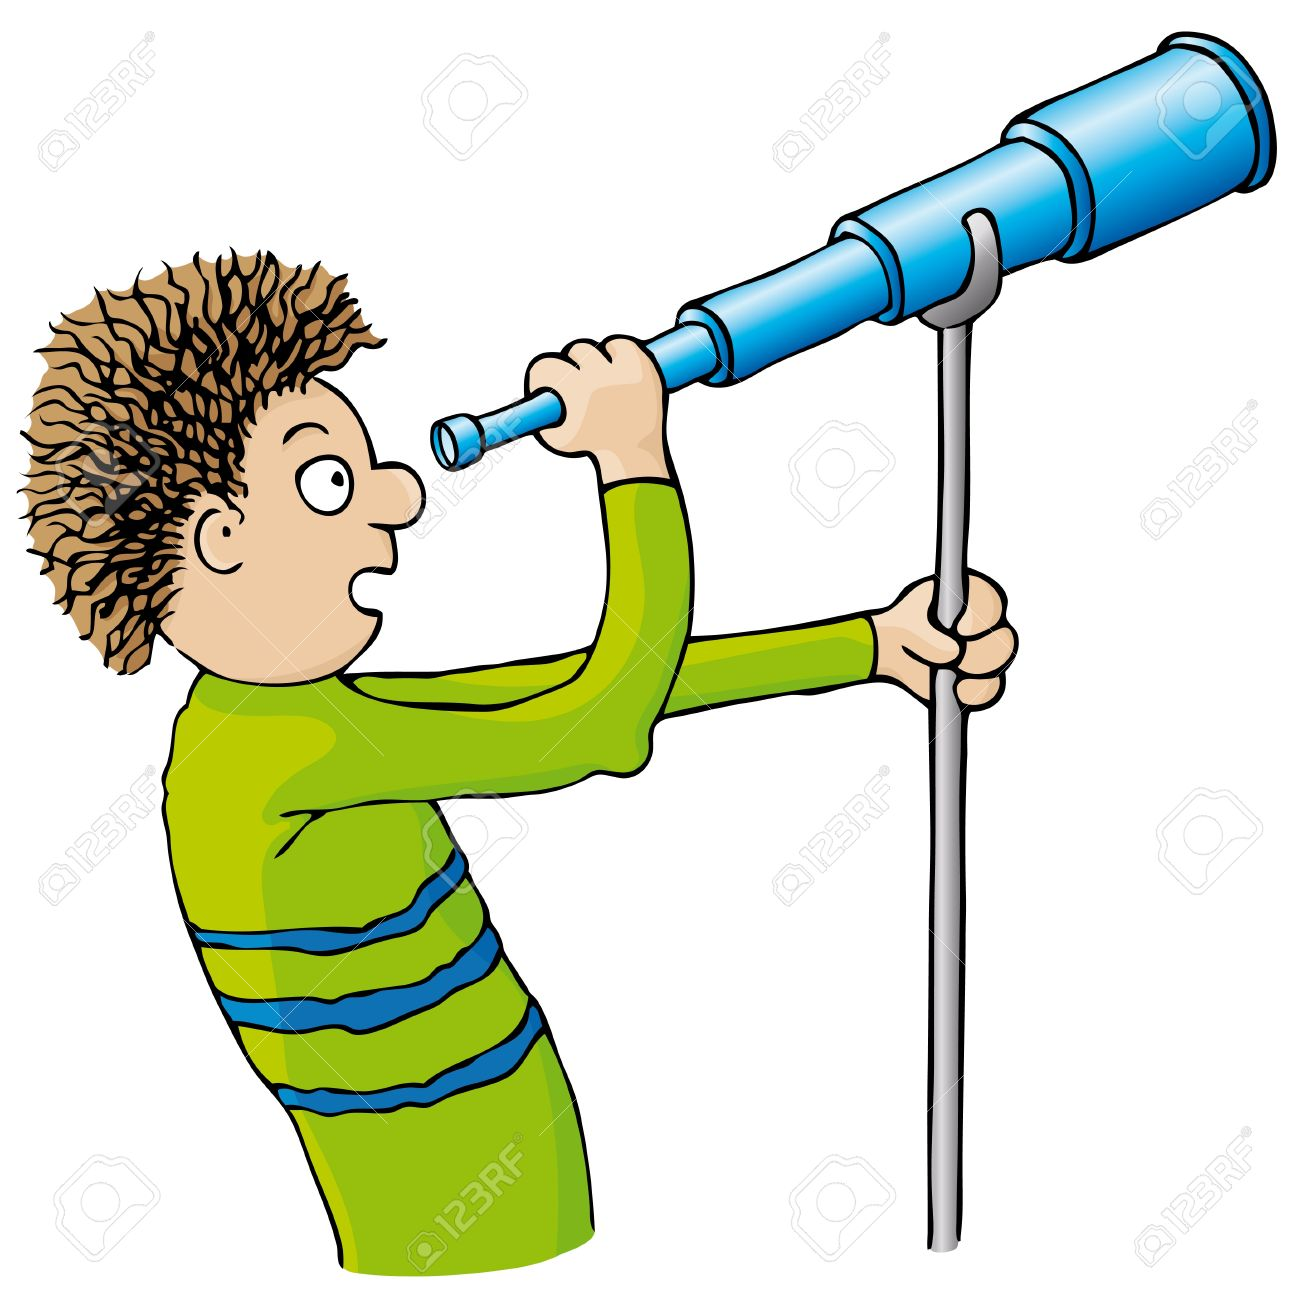 child with telescope royalty free cliparts vectors and stock